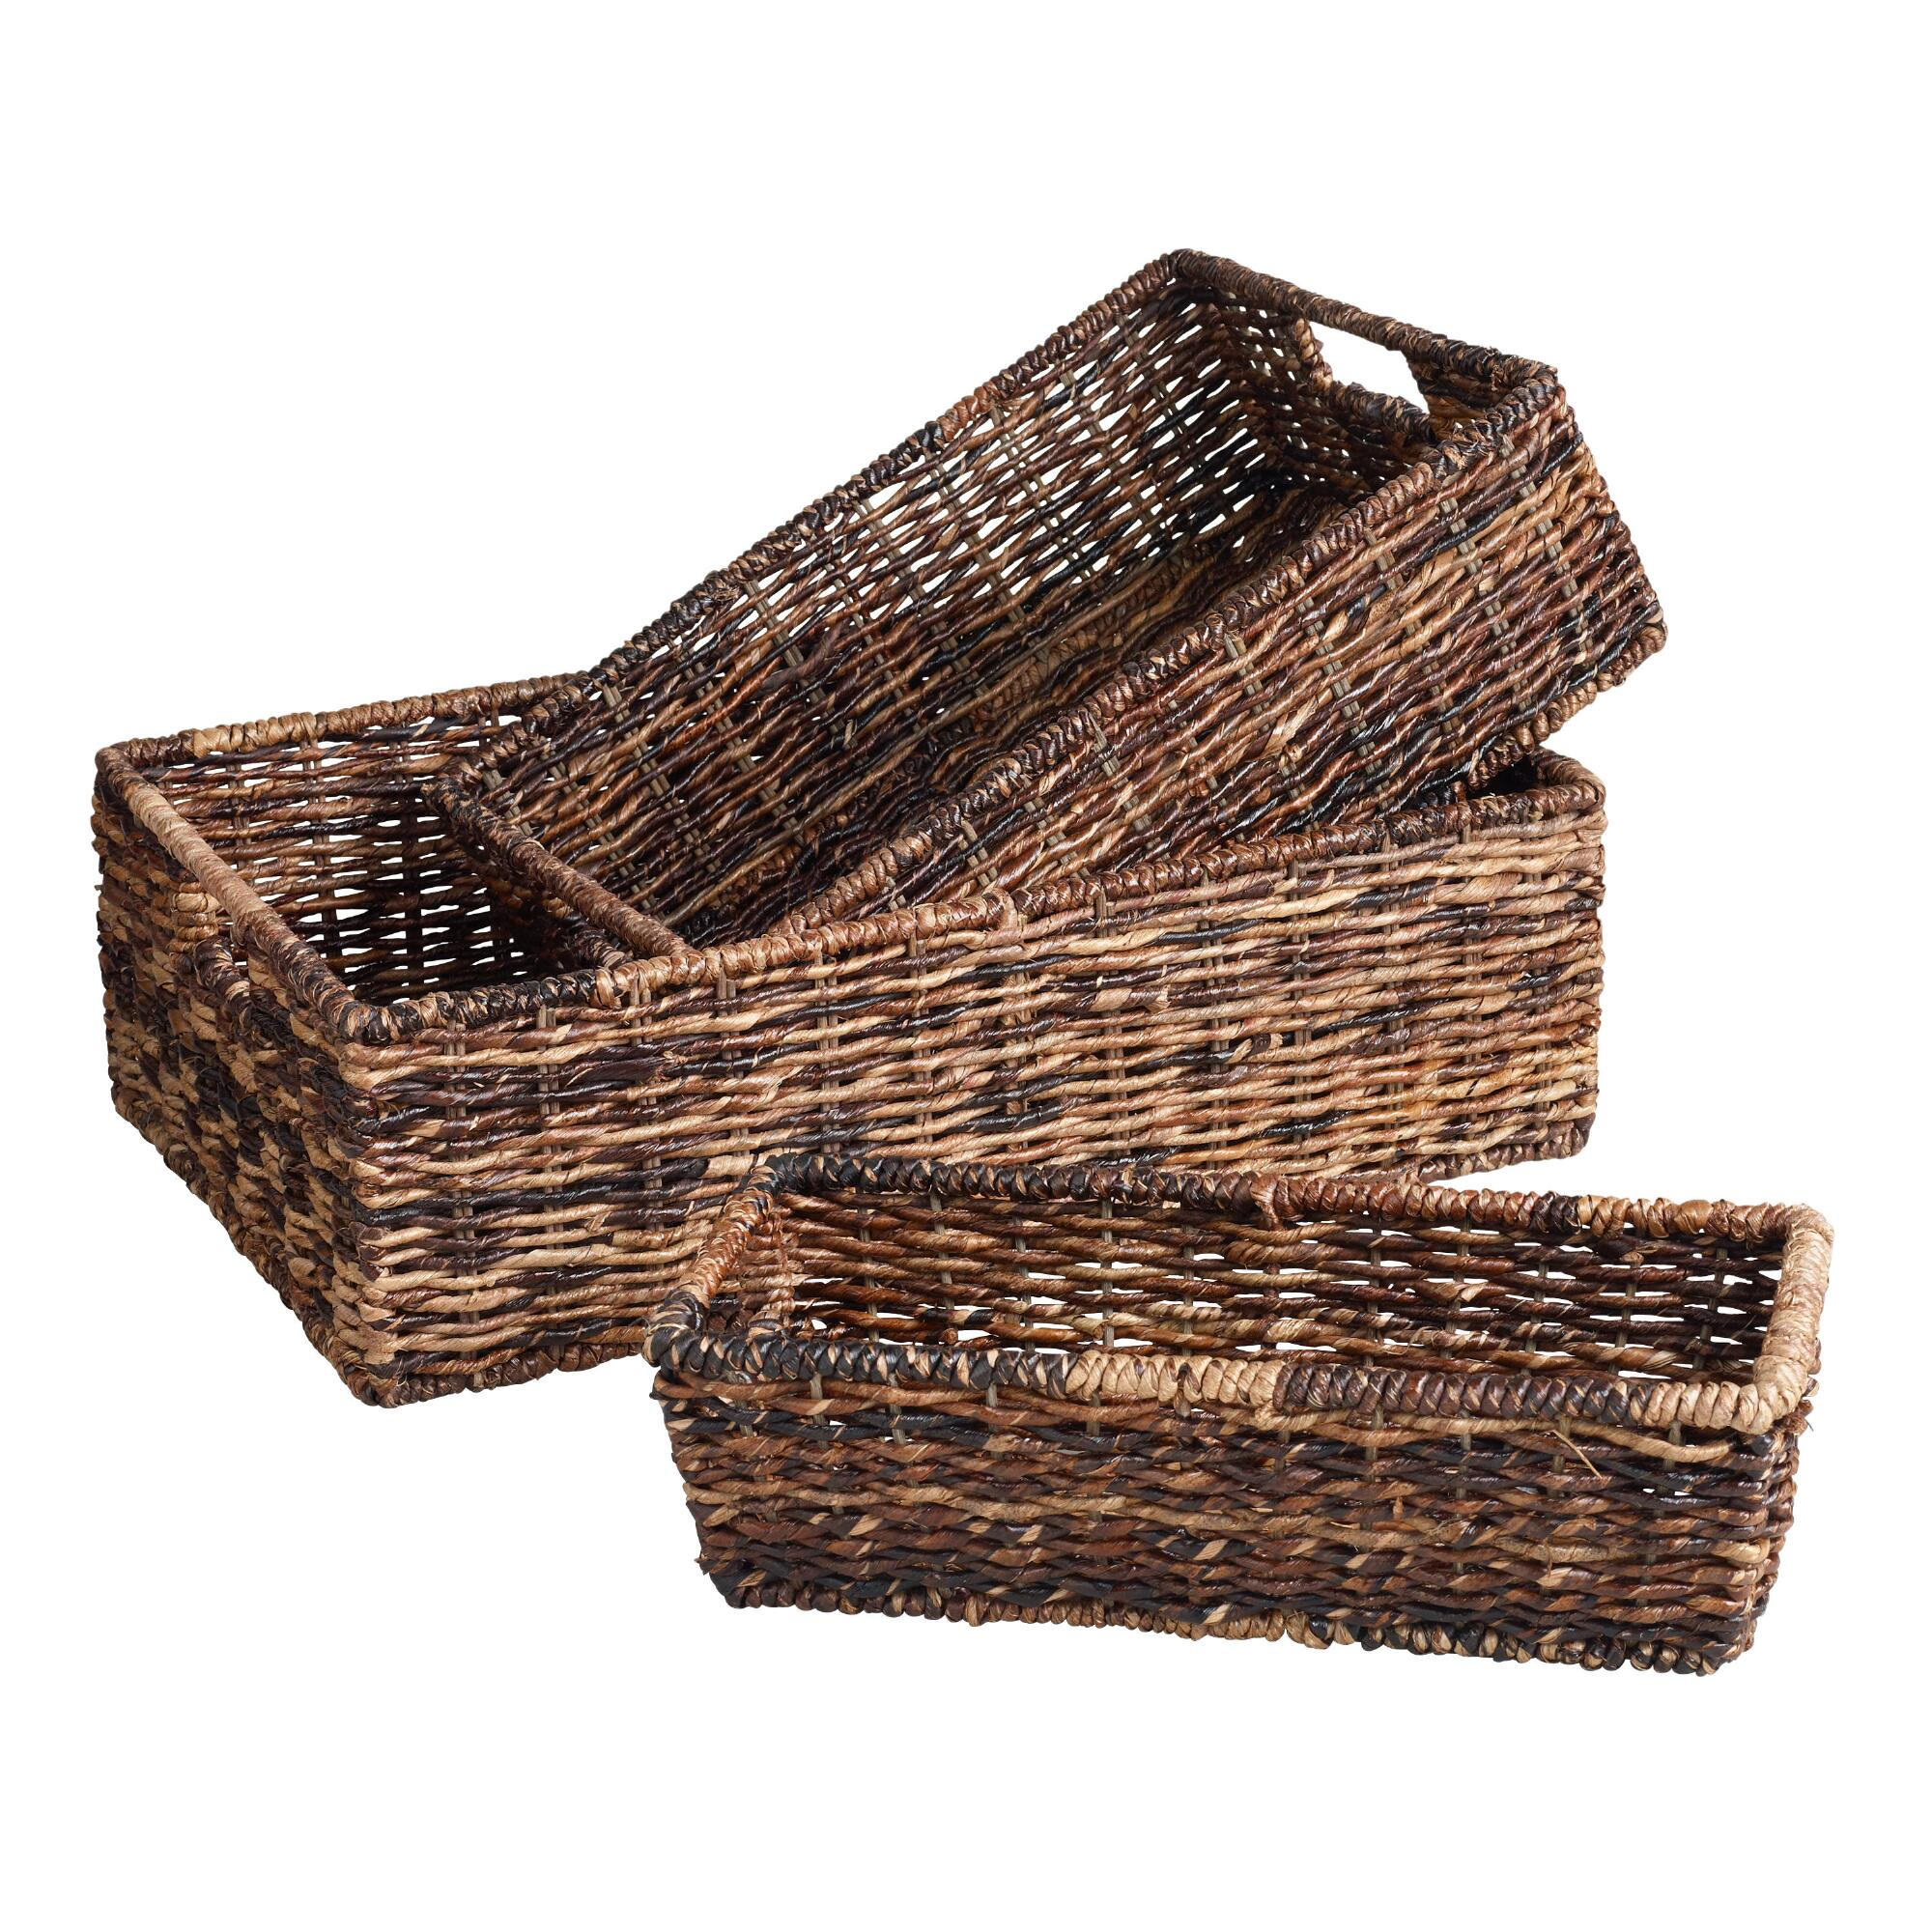 Madras Storage Baskets: Brown - Natural Fiber - Small by World Market Small